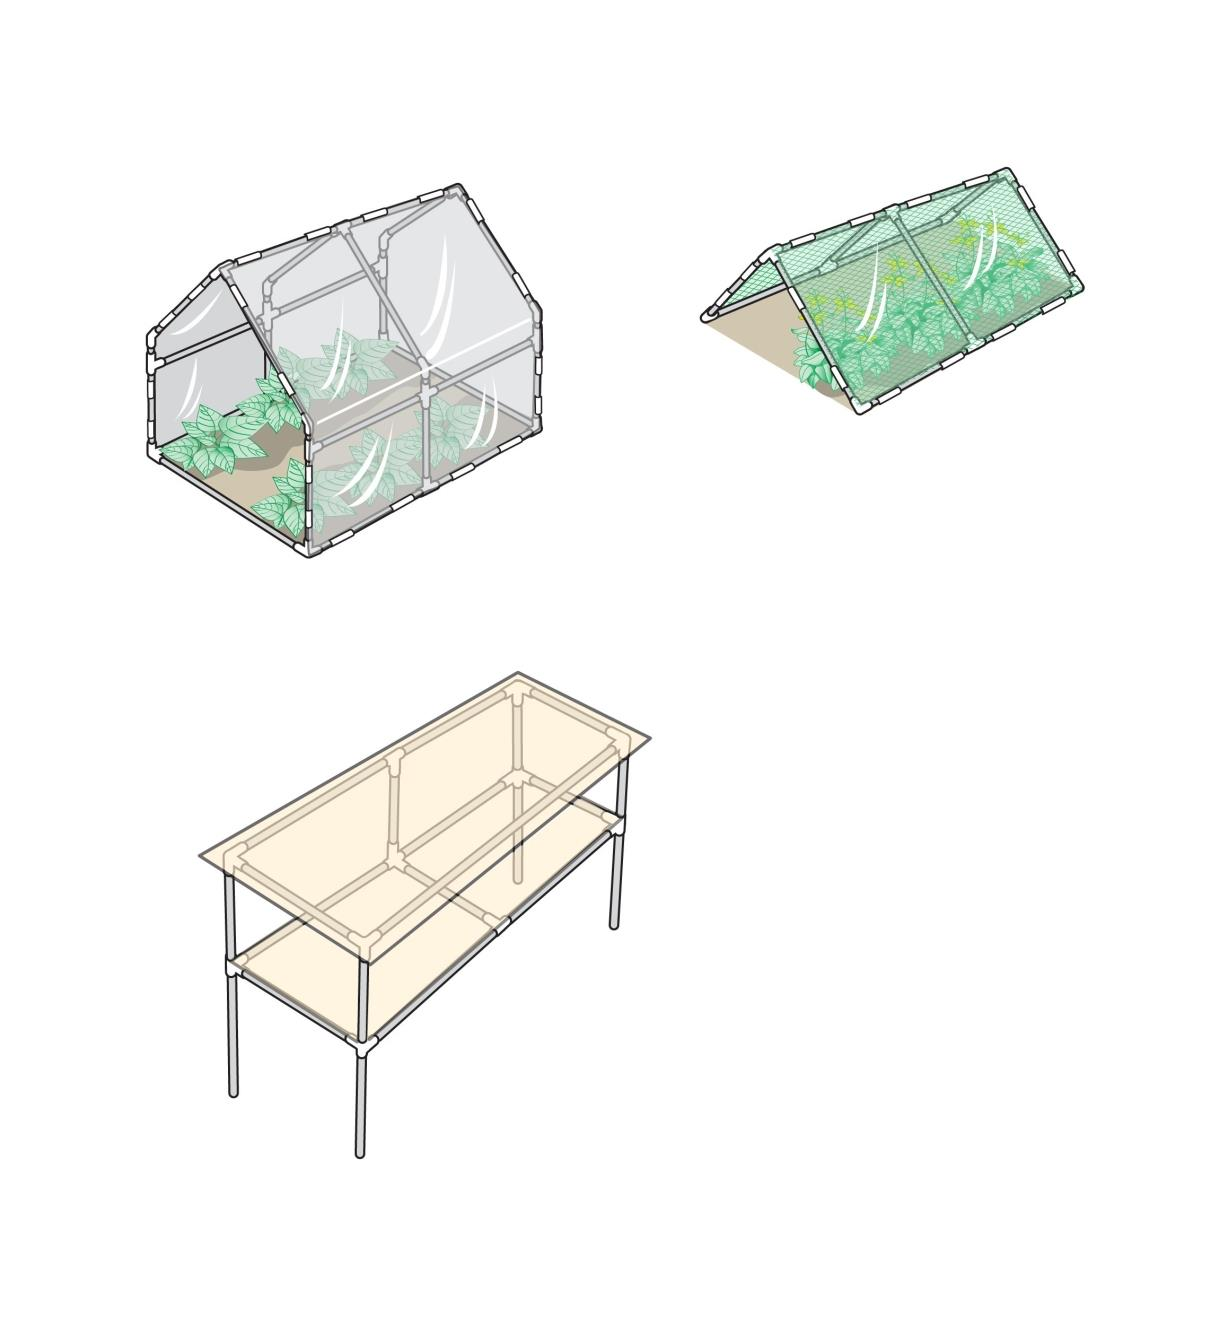 Illustrated examples of a greenhouse, row cover and table made with PVC connectors